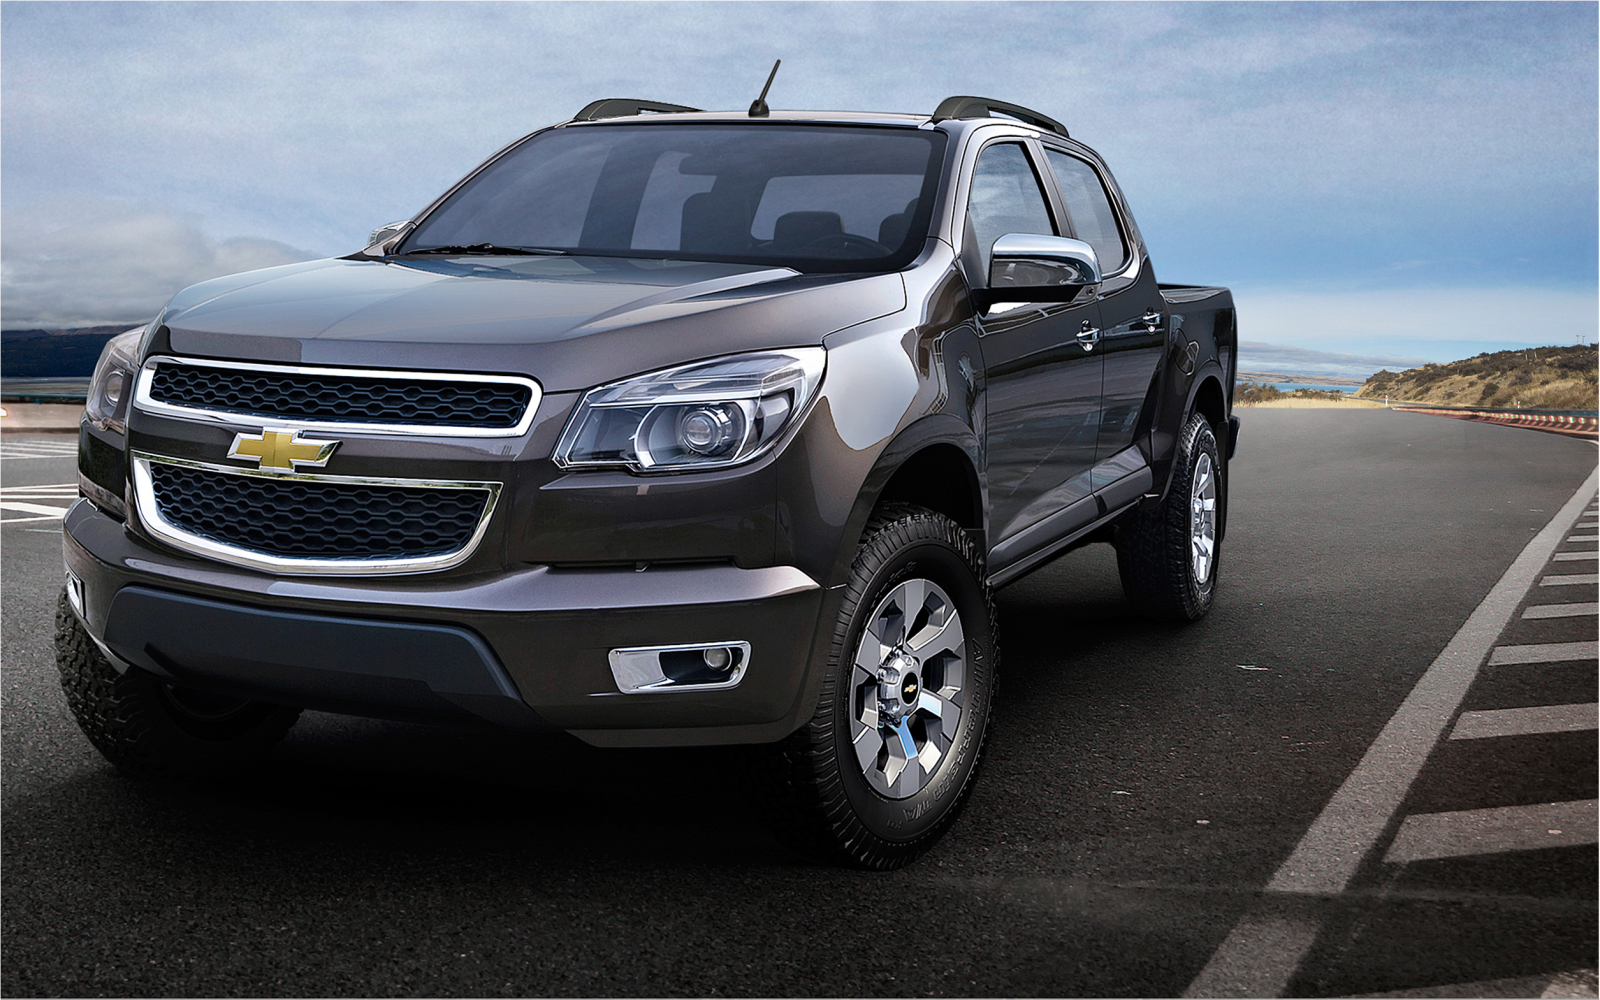 New Chevrolet Colorado to Be Built and Sold in the US - autoevolution